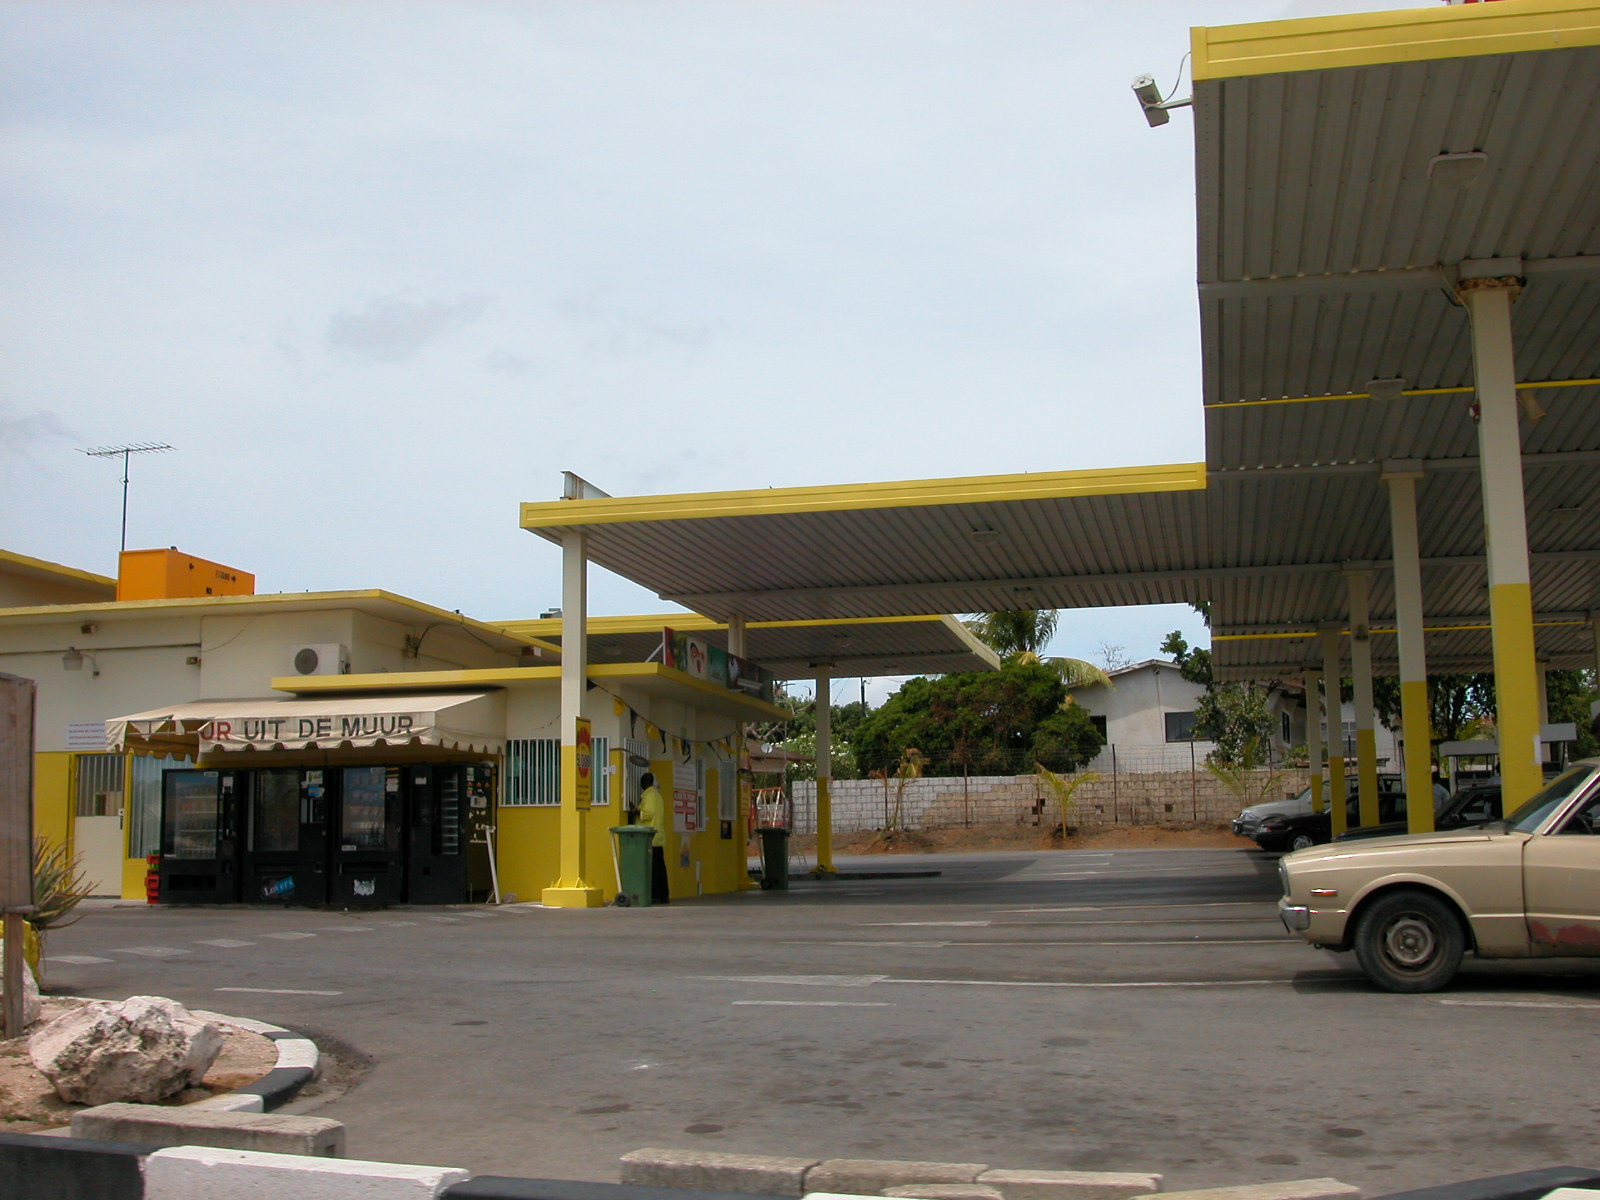 jacco uit de muur gas station yellow painted